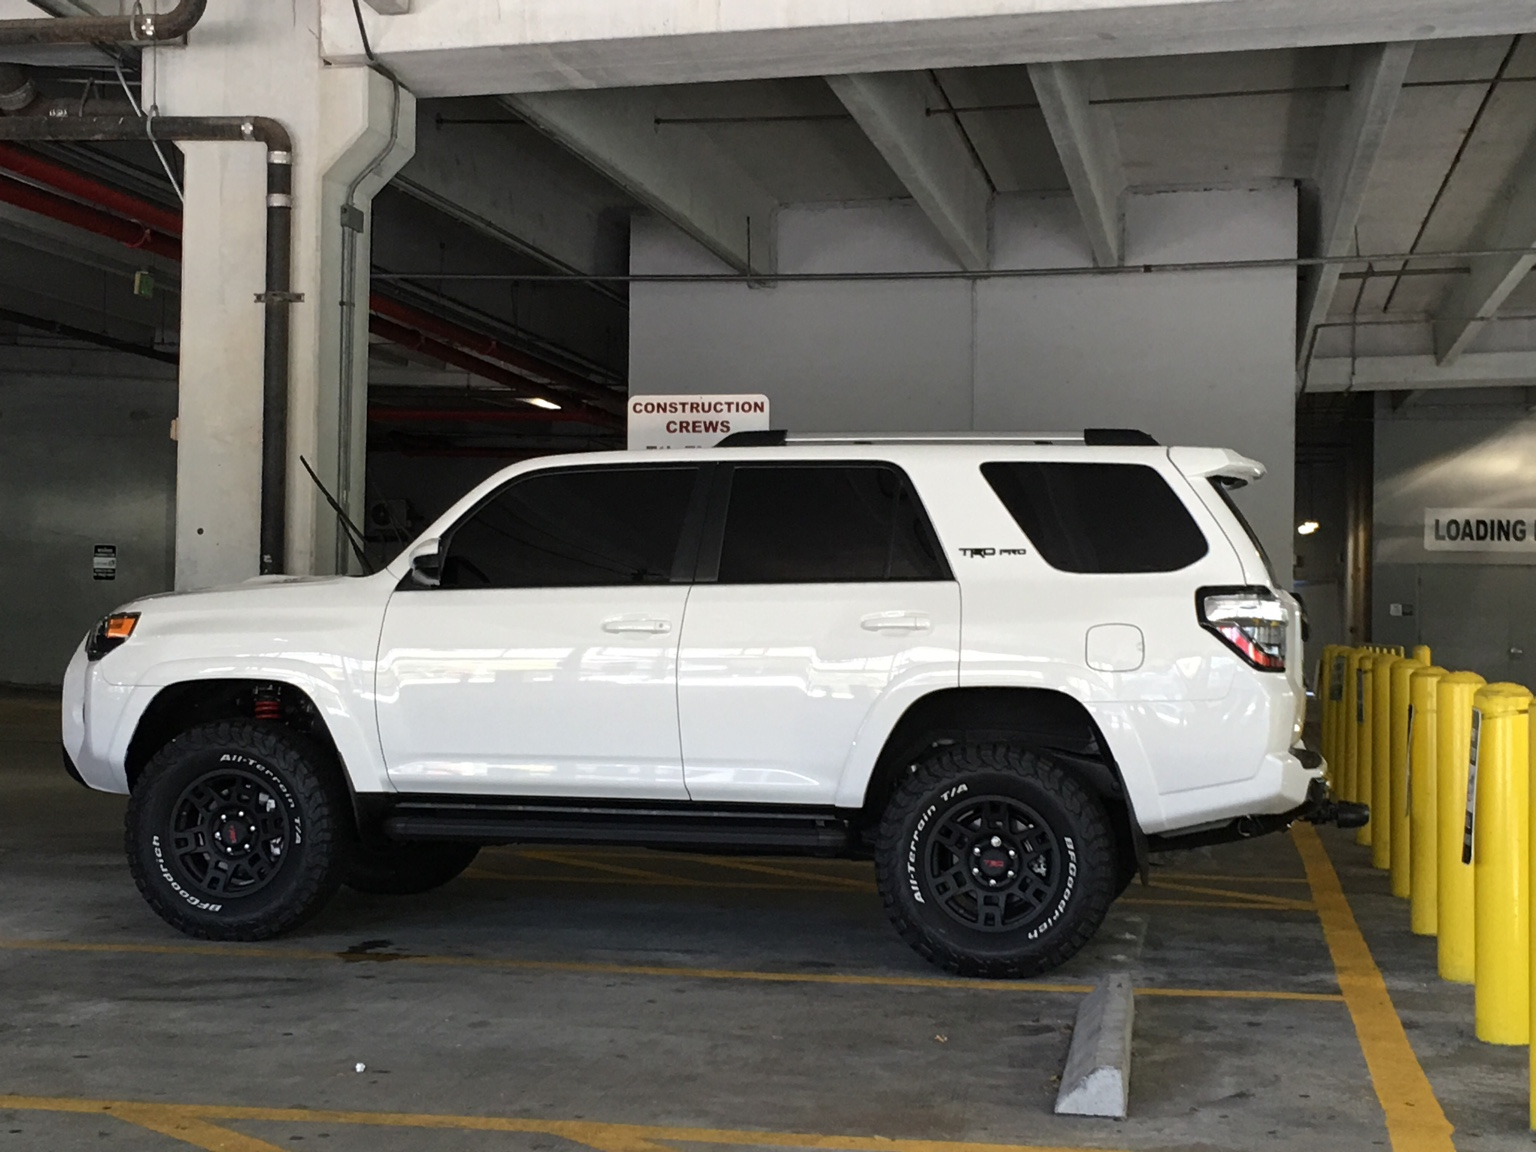 2017 4runner trd pro page 2 toyota 4runner forum largest 4runner - New T4r Trd Pro Owner From The Sf Bay Area Page 2 Toyota 4runner Forum Largest 4runner Forum